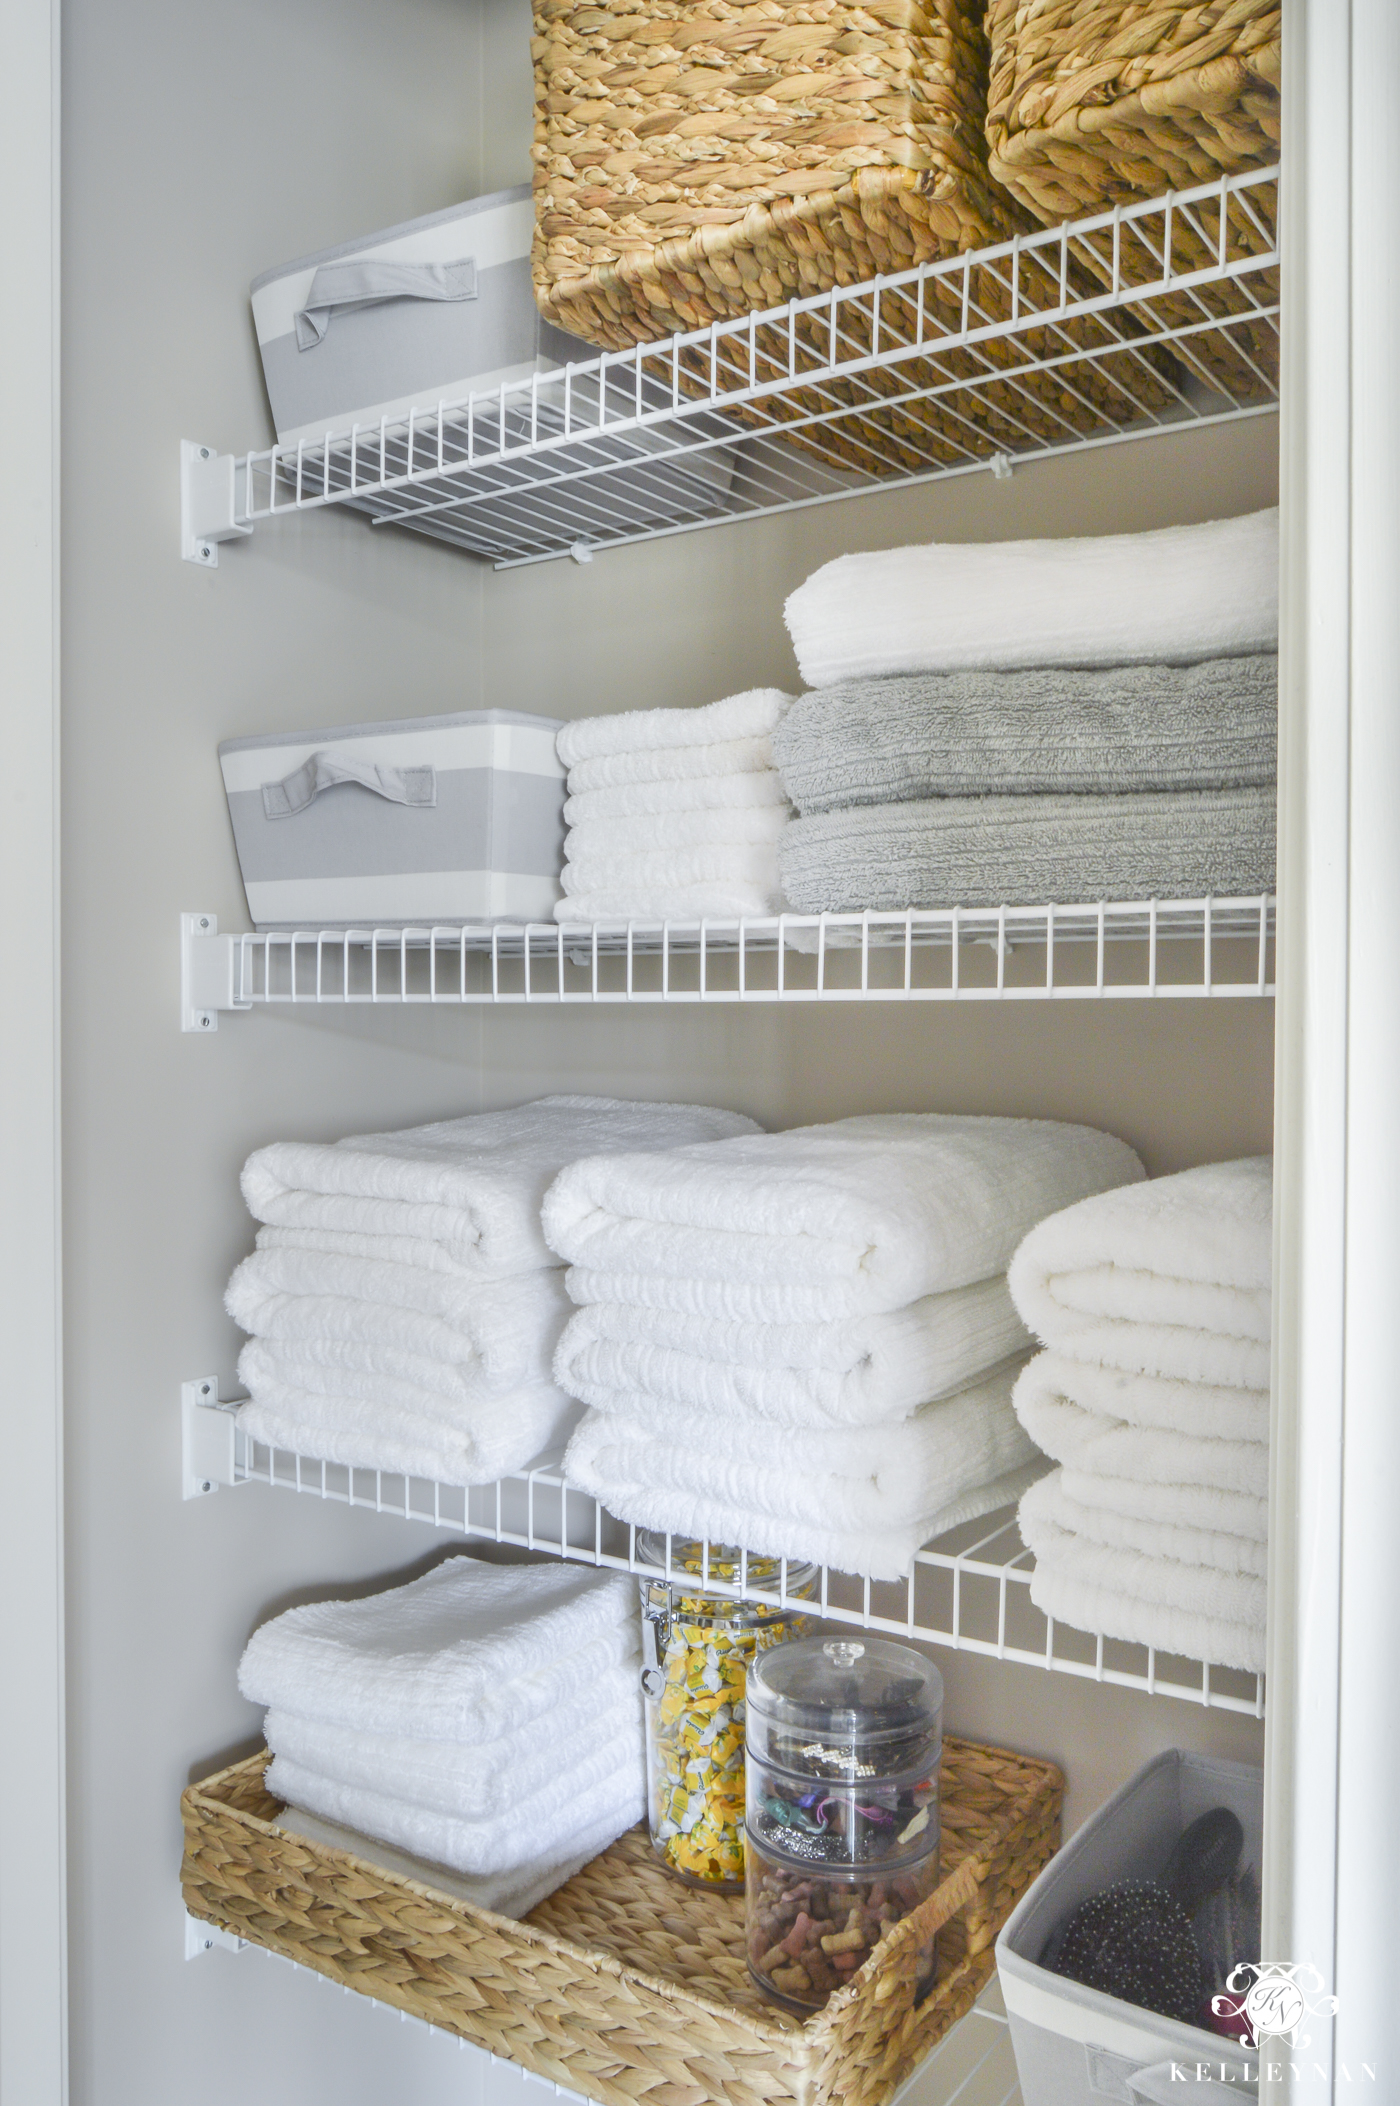 Organized Bathroom Linen Closet Anyone Can Have Kelley Nan - Bathroom closet organization ideas